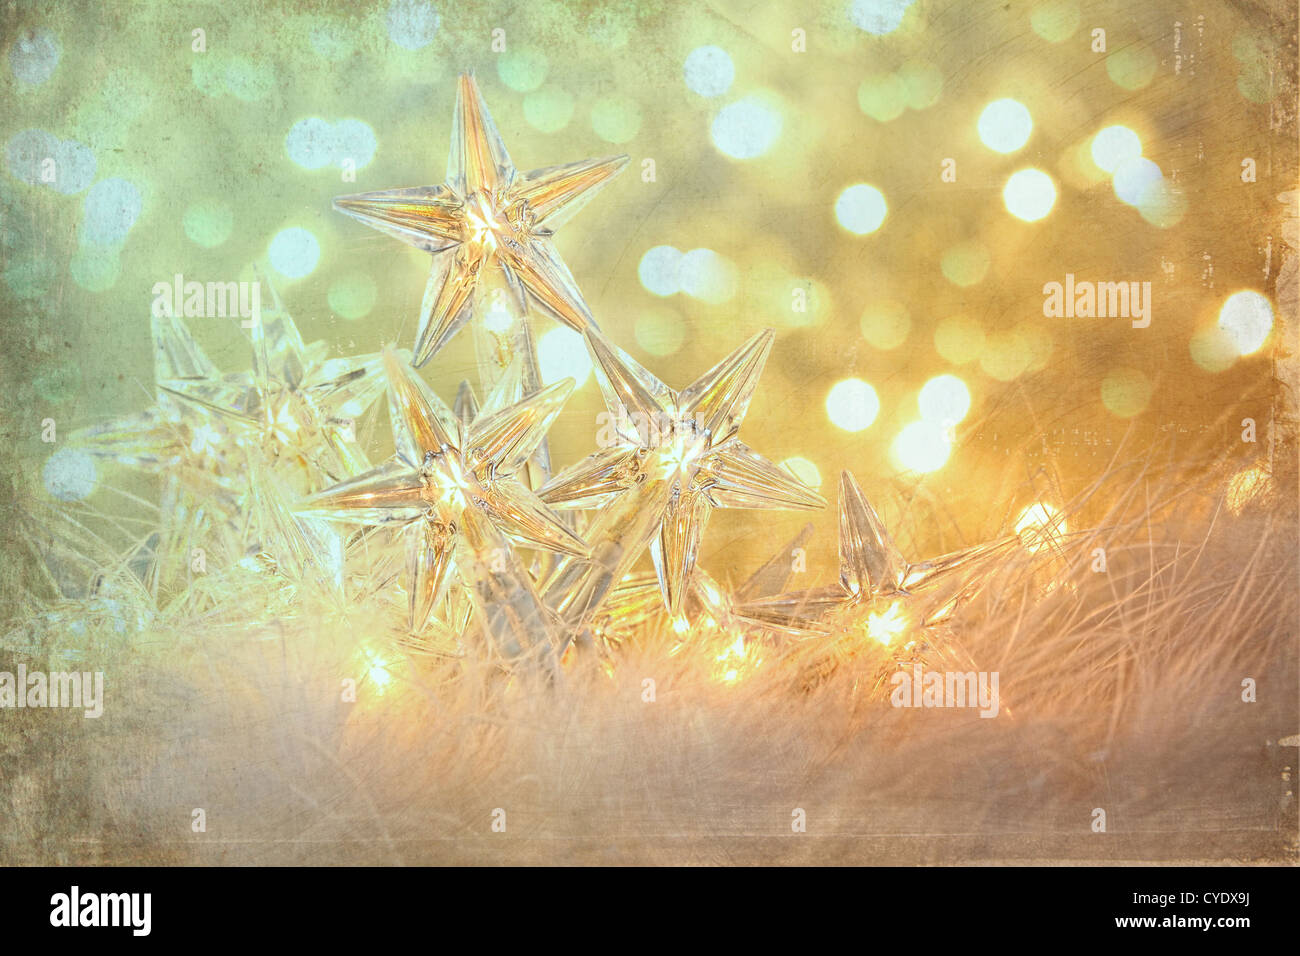 Vintage holiday lights with sparkle background - Stock Image